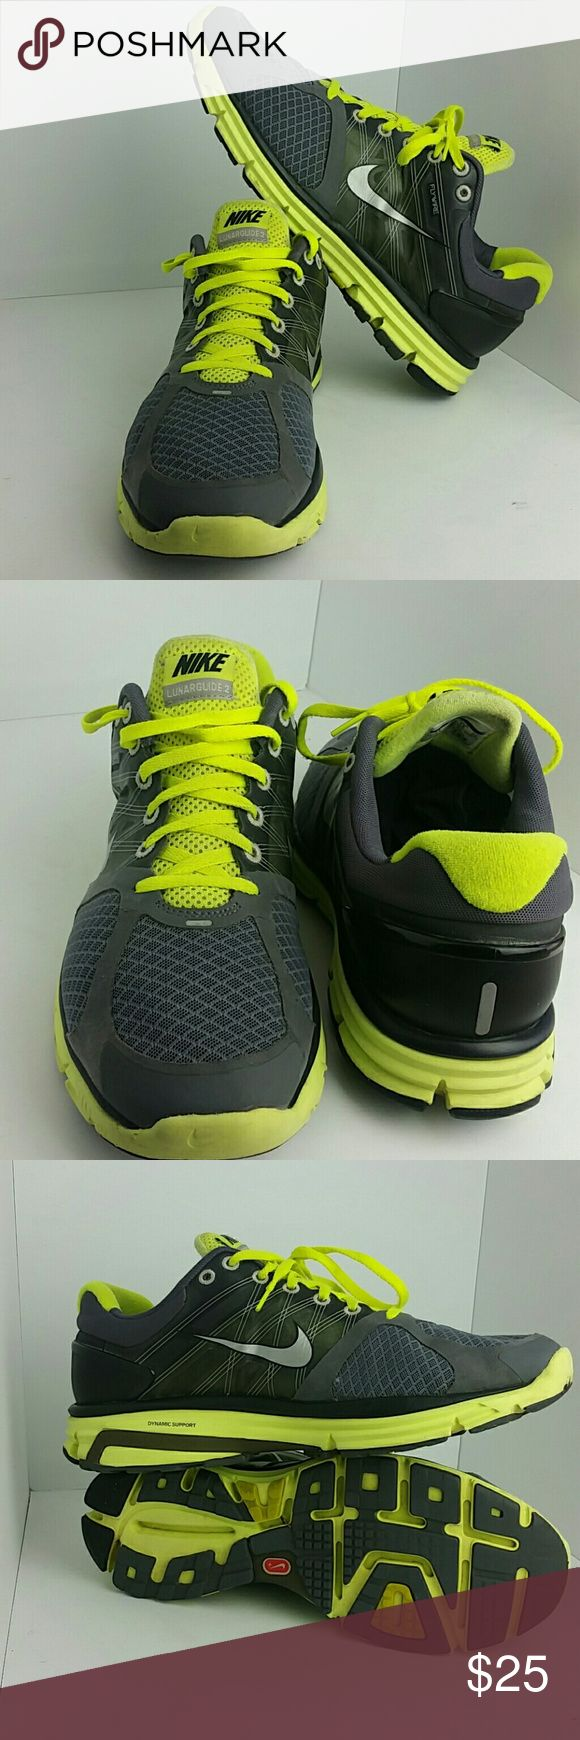 NIKE LUNARGLIDE 2 II MEN'S SHOES IN GOOD CONDITION WITH A SMALL HOLE ON THE LEFT SHOE AS YOU CAN SEE IN THE LAST PICTURE WHICH IS NOT NOTICEABLE WHEN YOU HAVE IT ON   SKE # TUB NIKE  Shoes Athletic Shoes